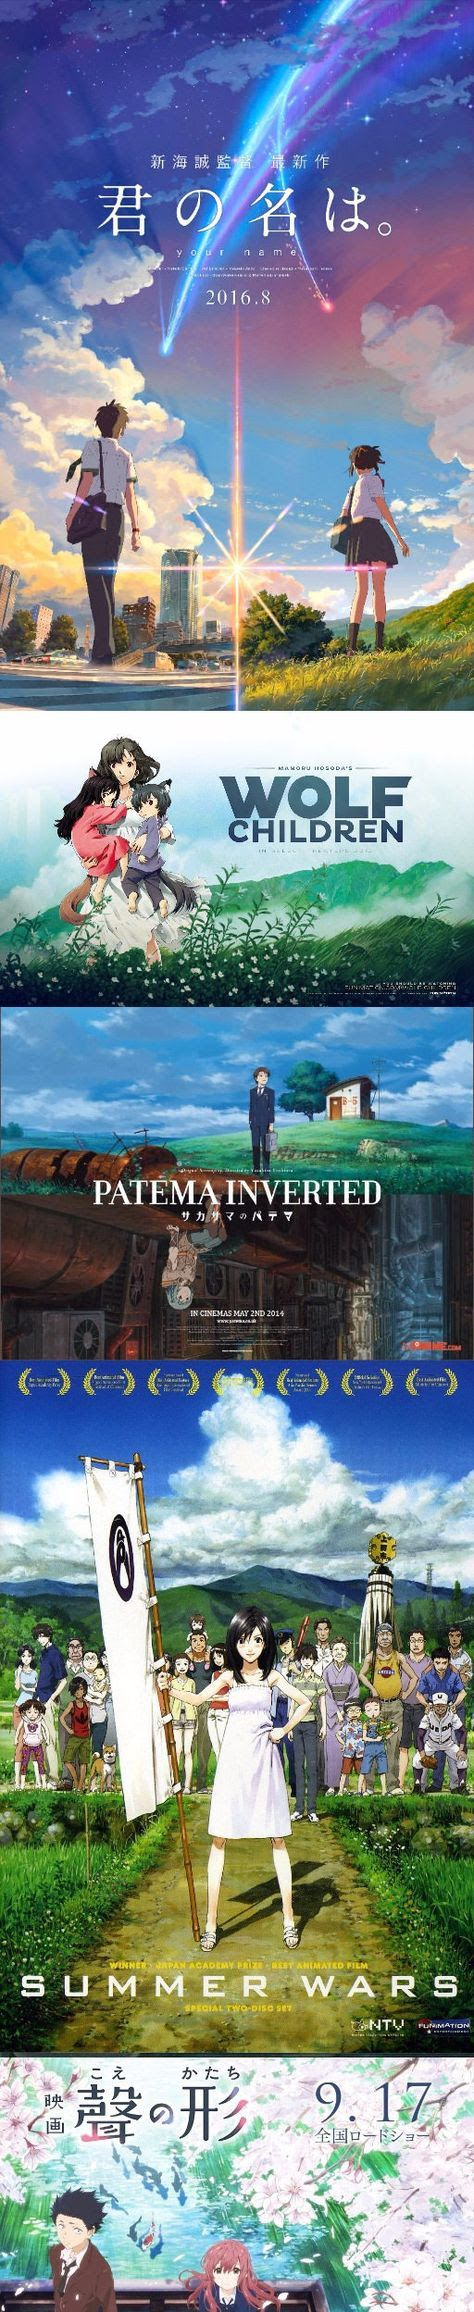 Pin by Antonija Breškić on Anime in 2020 Anime movies